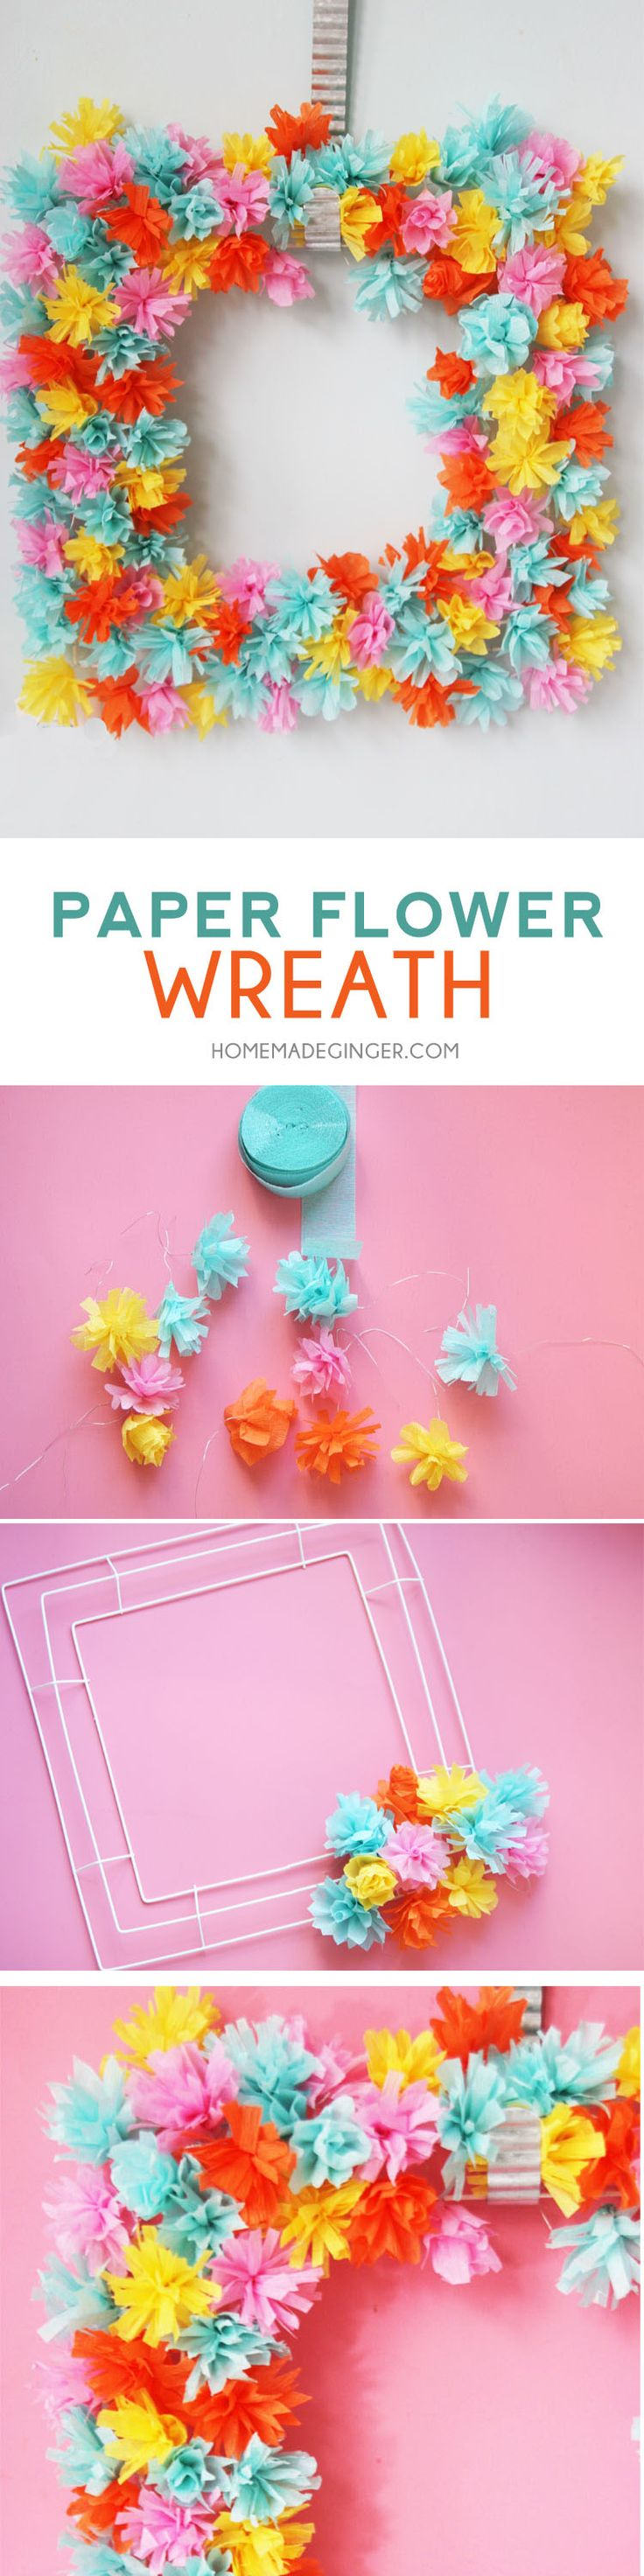 The pin junkie how to make paper bluebonnets - Make A Beautiful Paper Flower Wreath Out Of Crepe Paper This Is The Perfect Diy